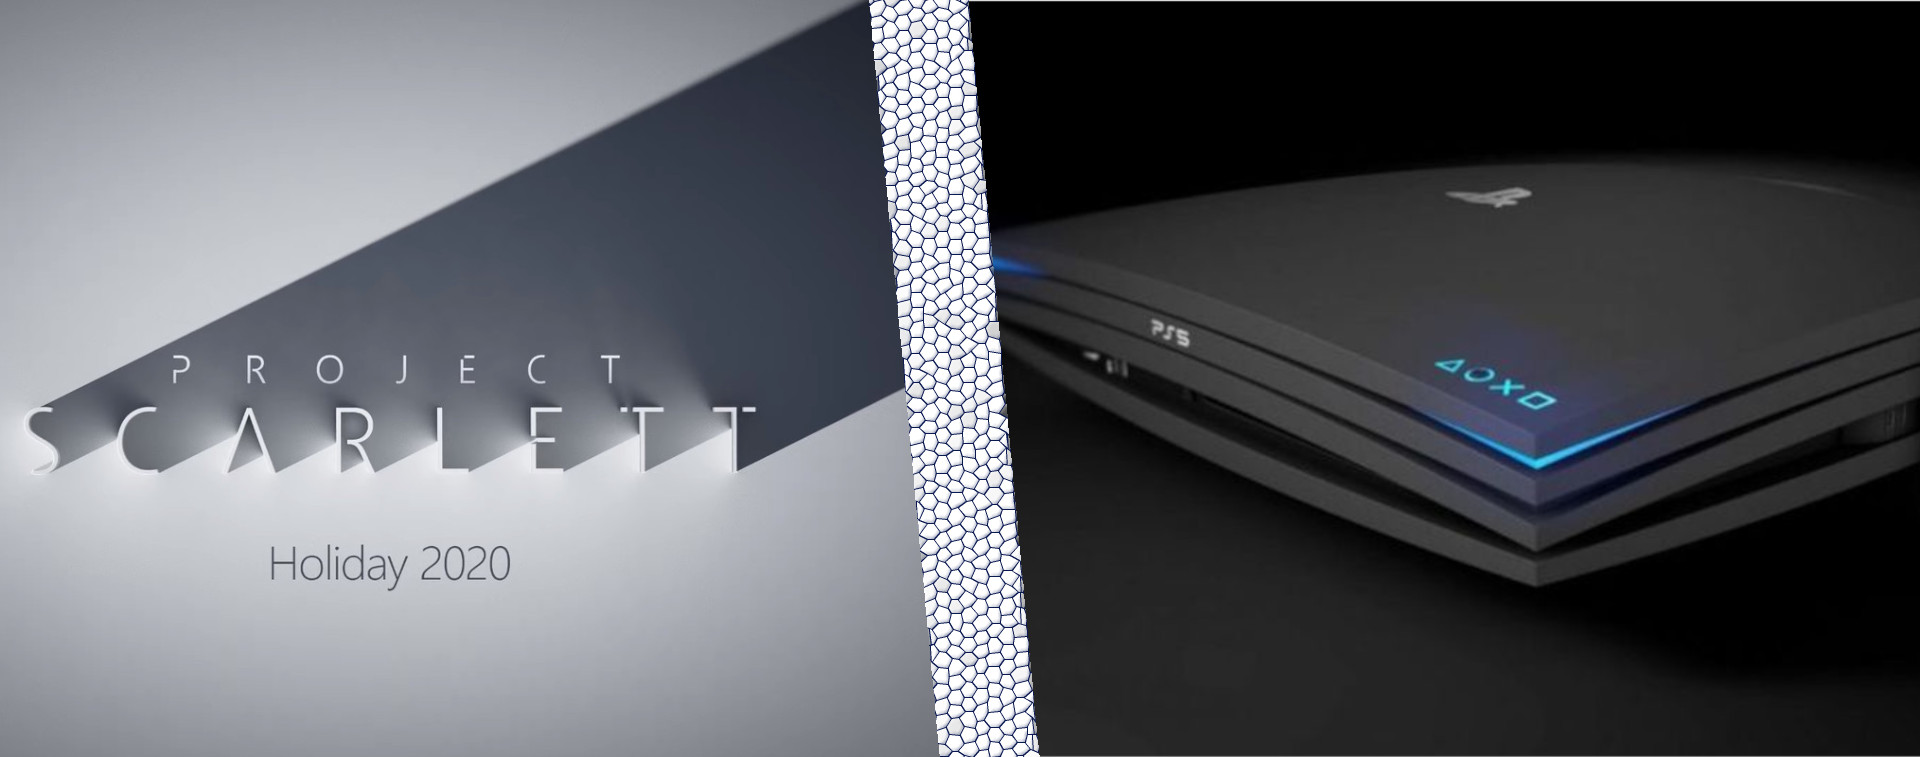 Photo of Xbox Scarlett and PS5 to offer Ray Tracing for better Visual Fidelity